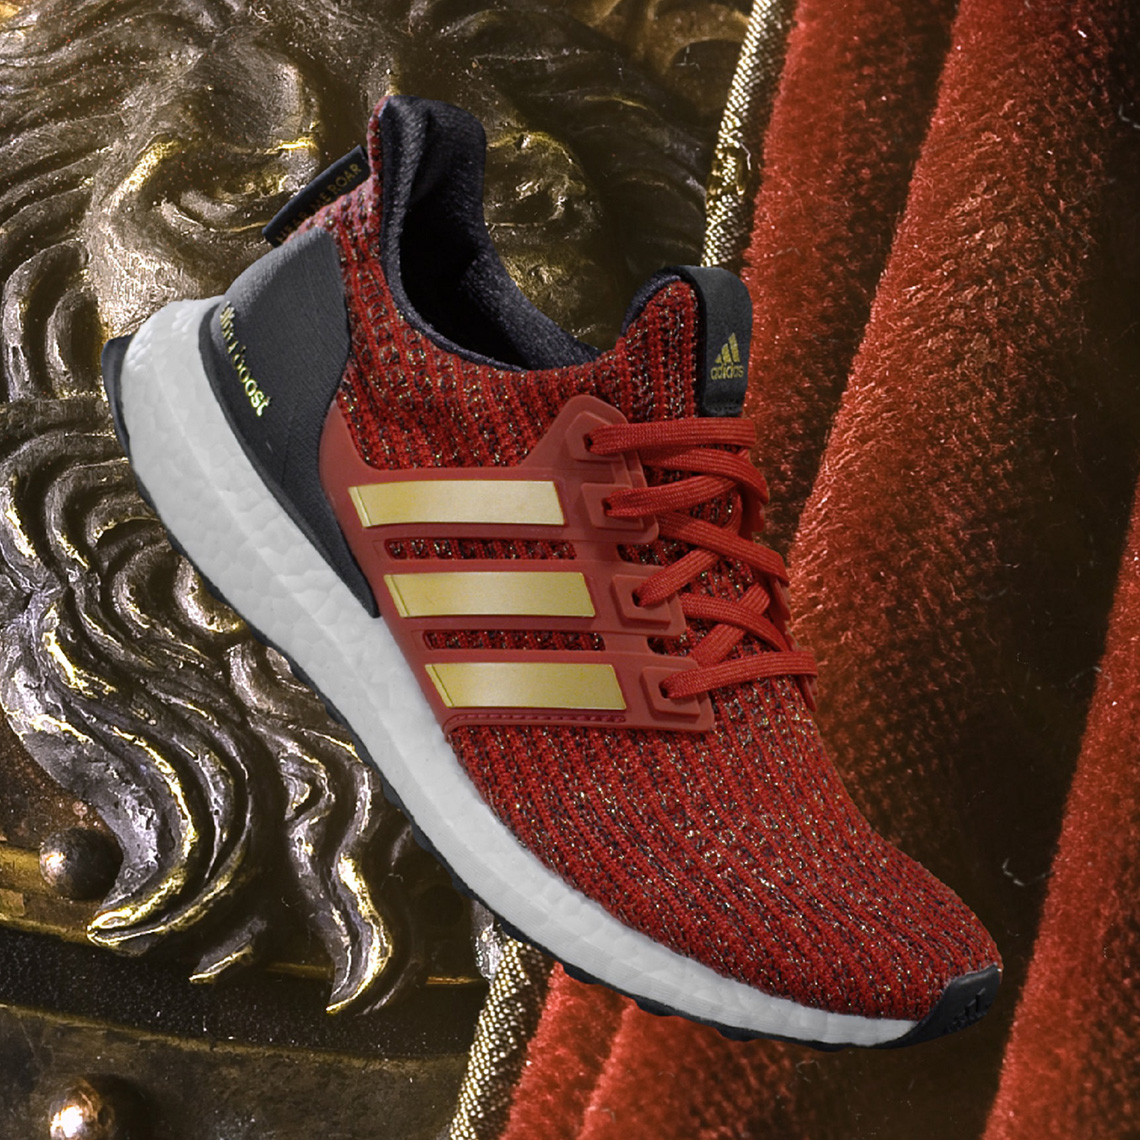 """4b29870fe3c Game Of Thrones x adidas Ultra Boost """"House Lannister"""" Release Date  March  22"""